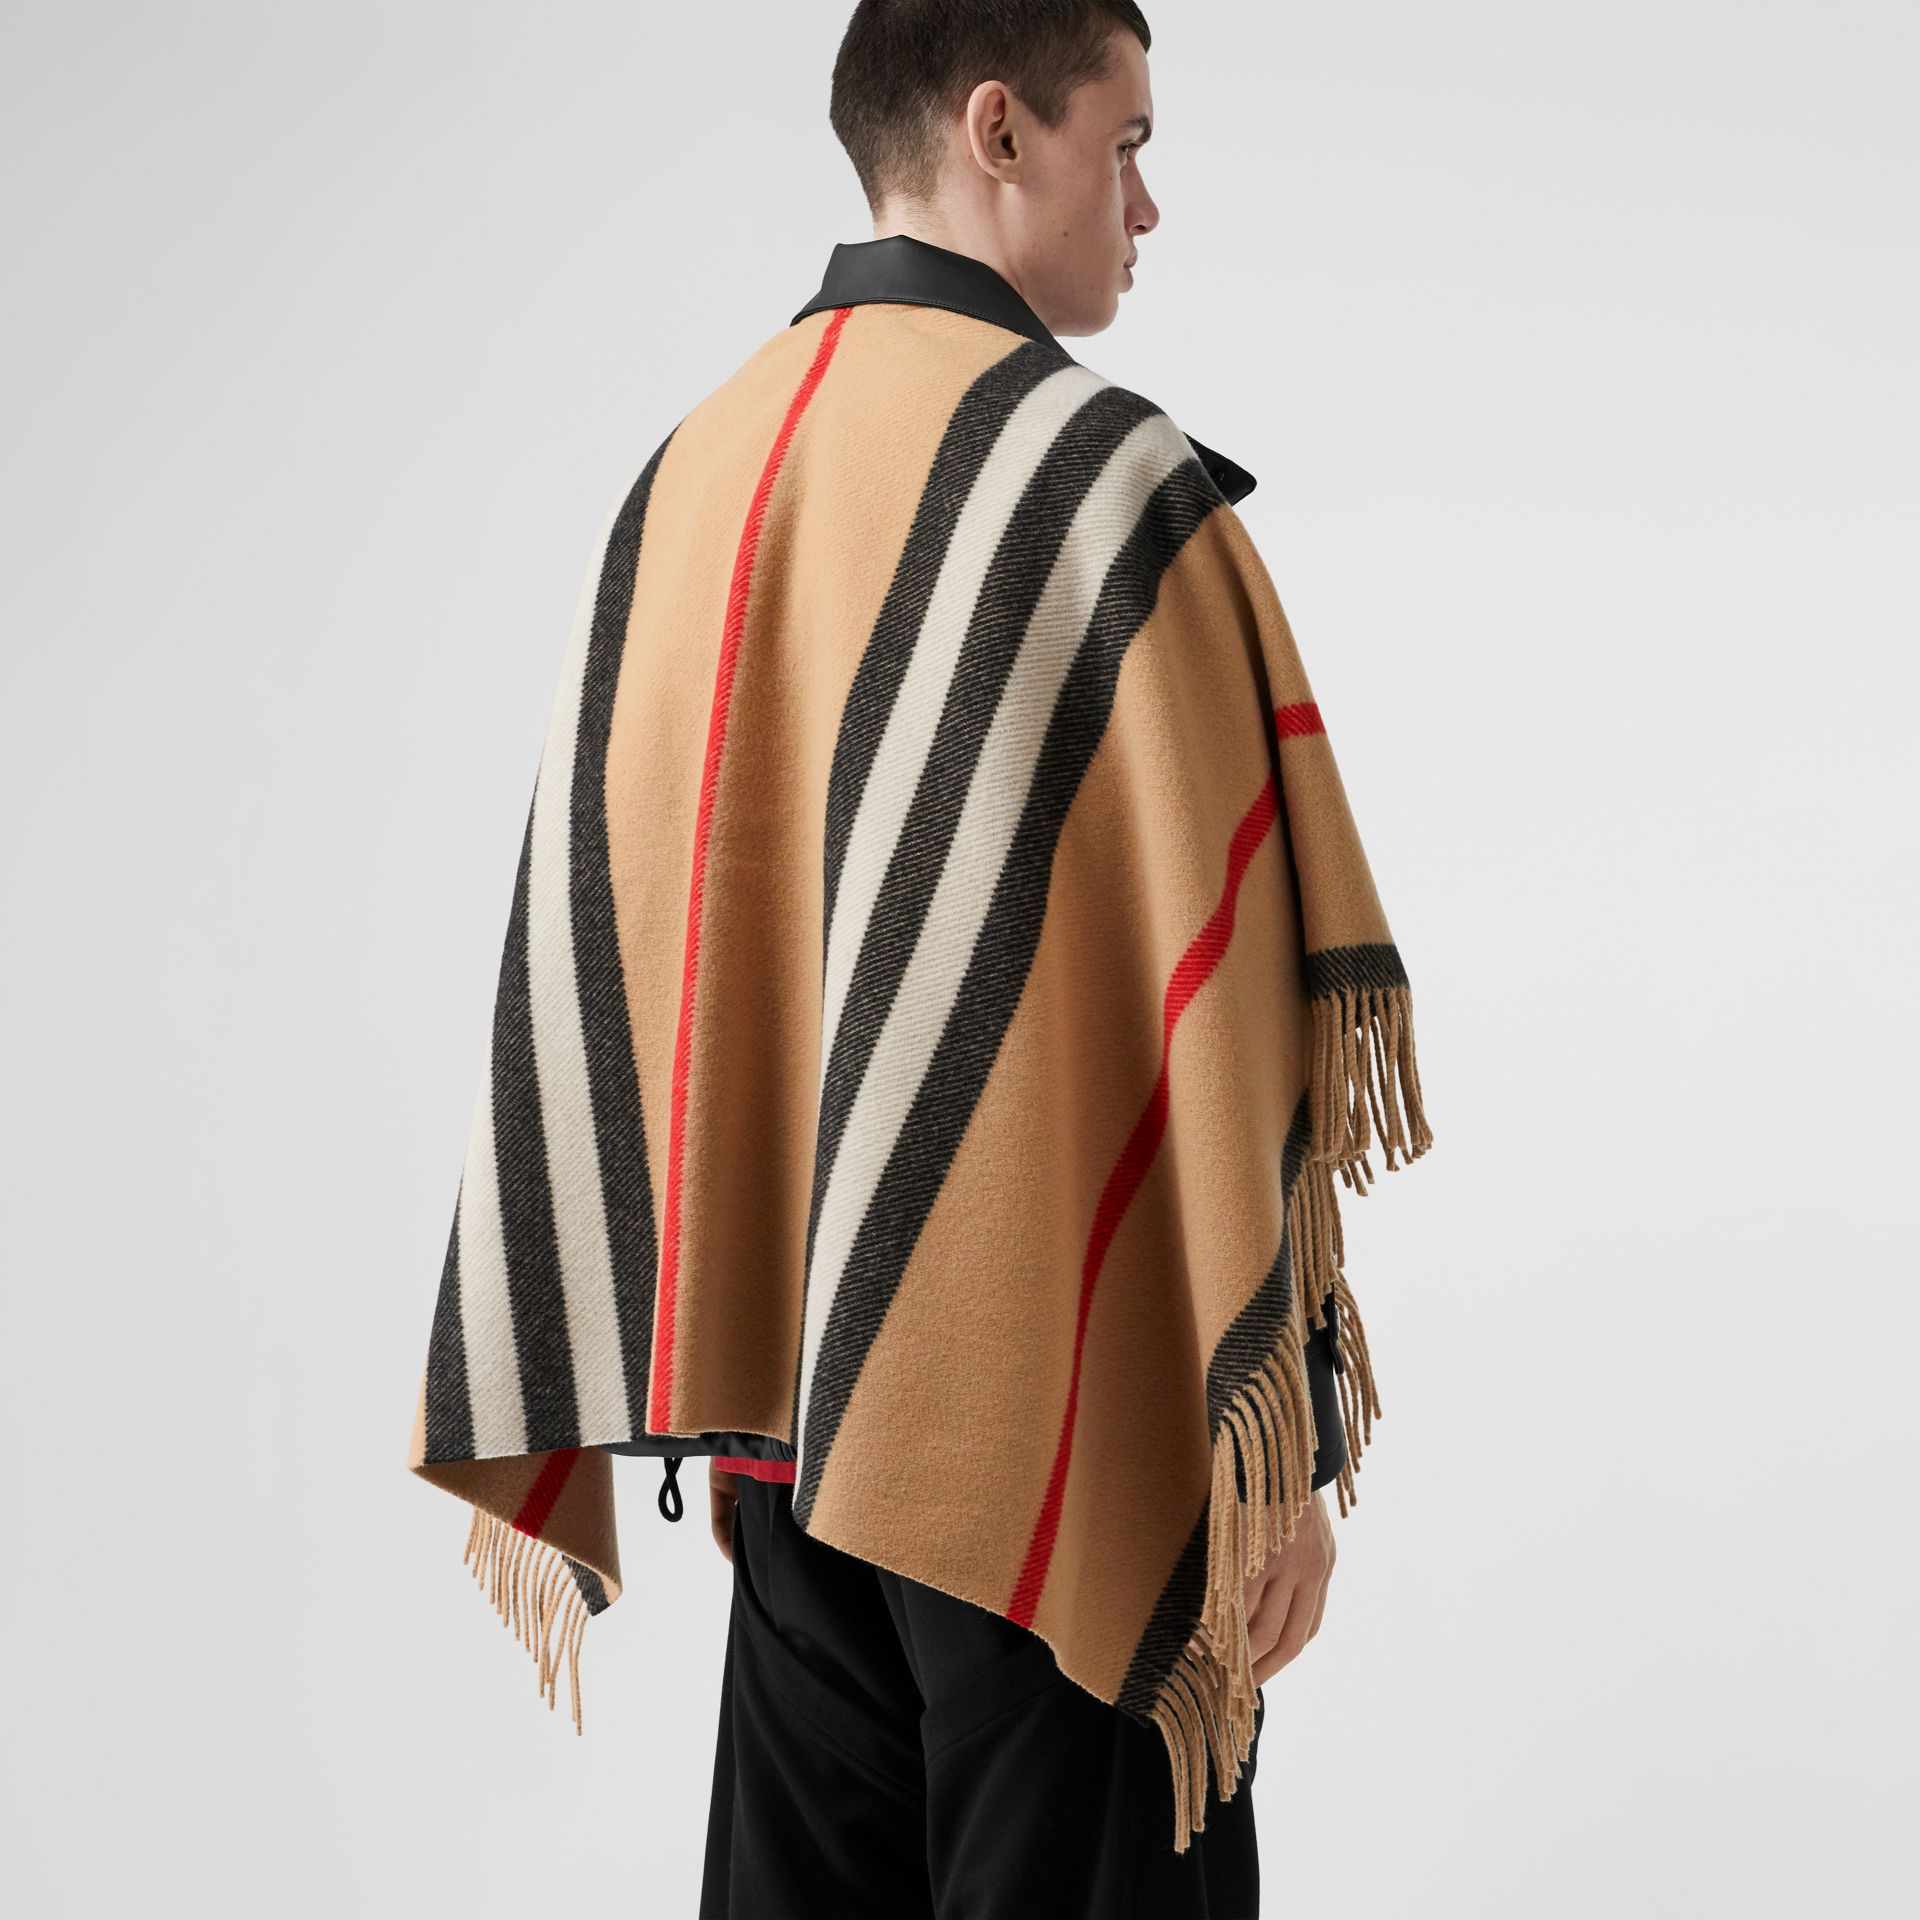 Striped Wool Cape in Camel - Women | Burberry United States - gallery image 8